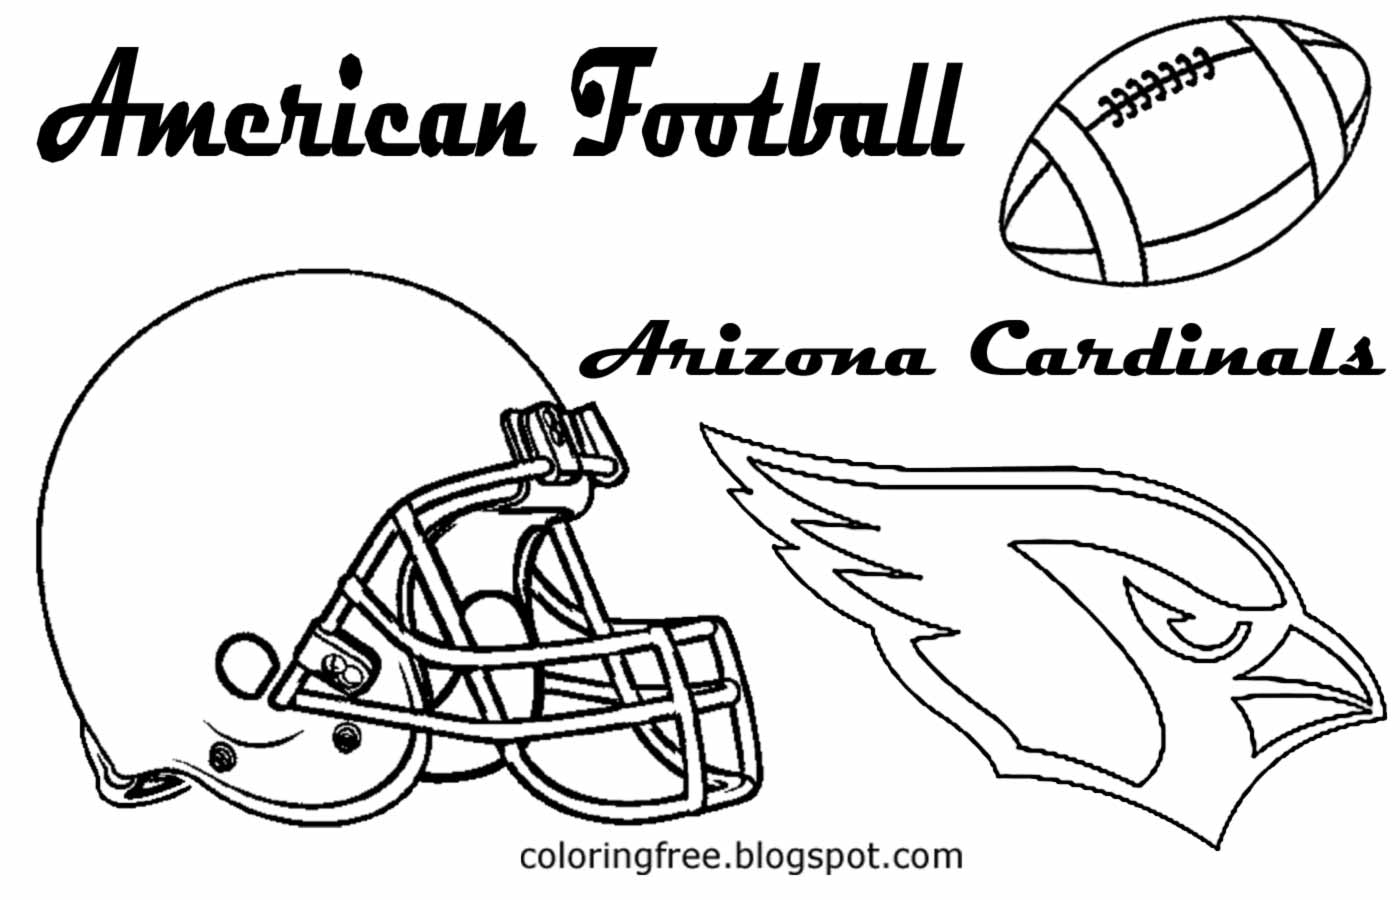 cardinals football coloring pages - photo#48